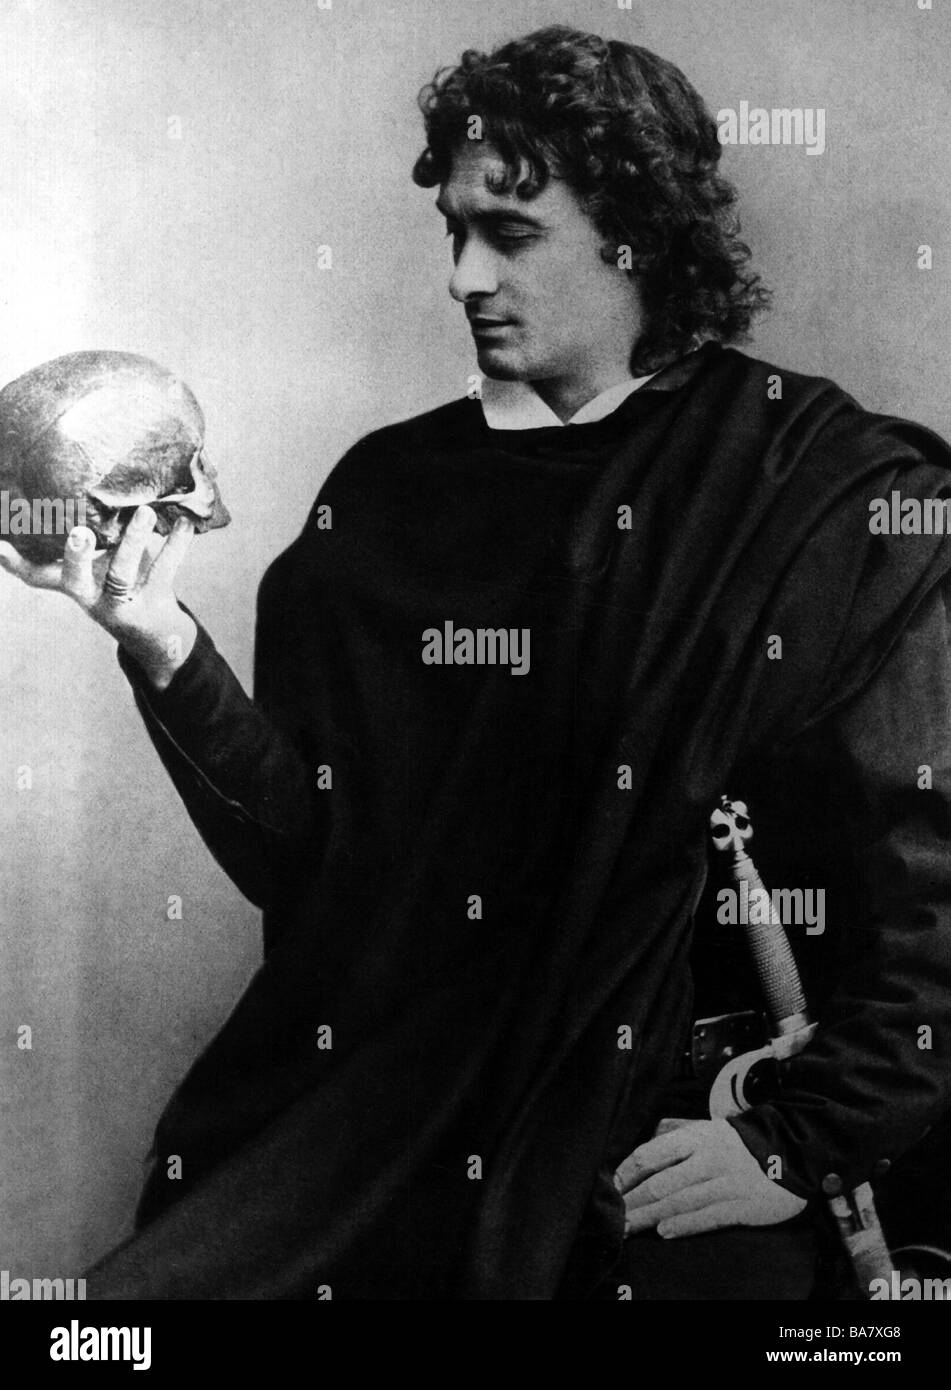 Kainz, Josef, 2.1.1858 - 20.9.1910, Austrian actor, half length, as Hamlet in the drama by William Shakespeare, - Stock Image